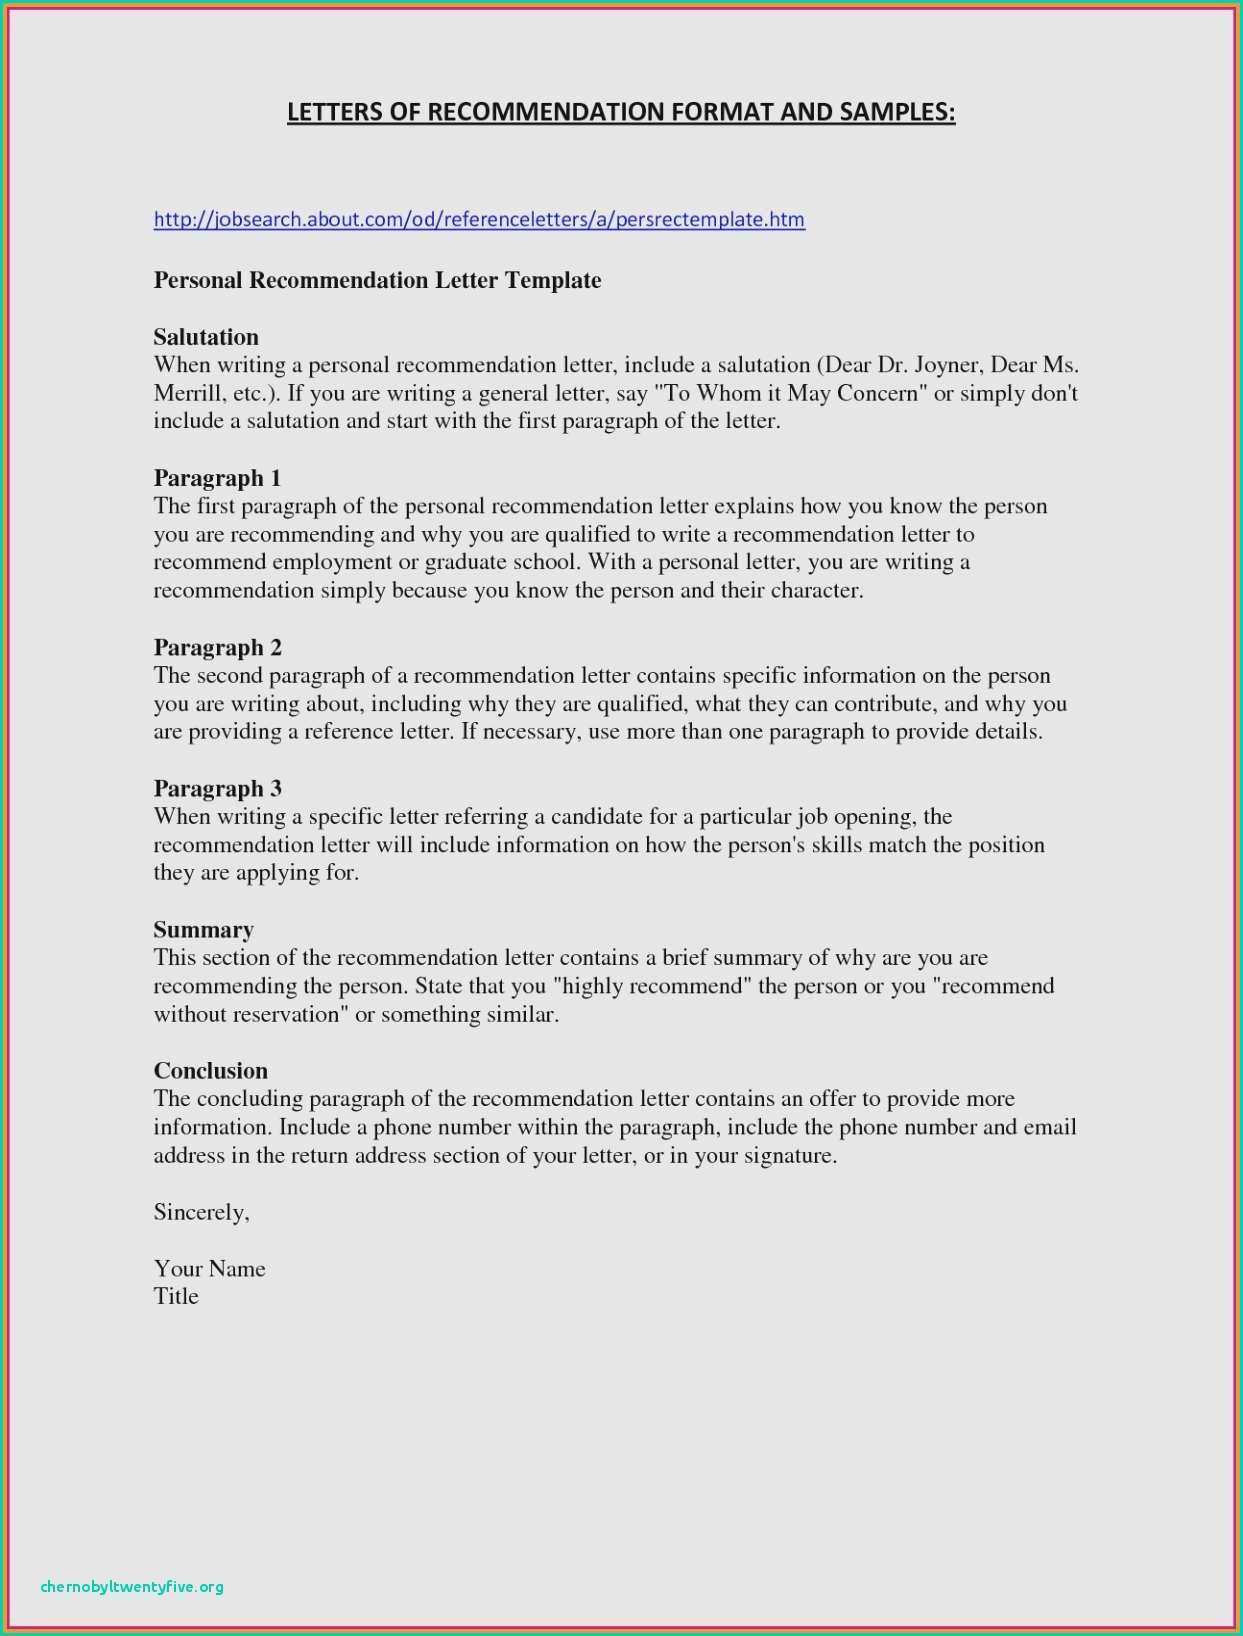 Lettre De Motivation Super U Lettre De Motivation 2 Application Letter as College Professor